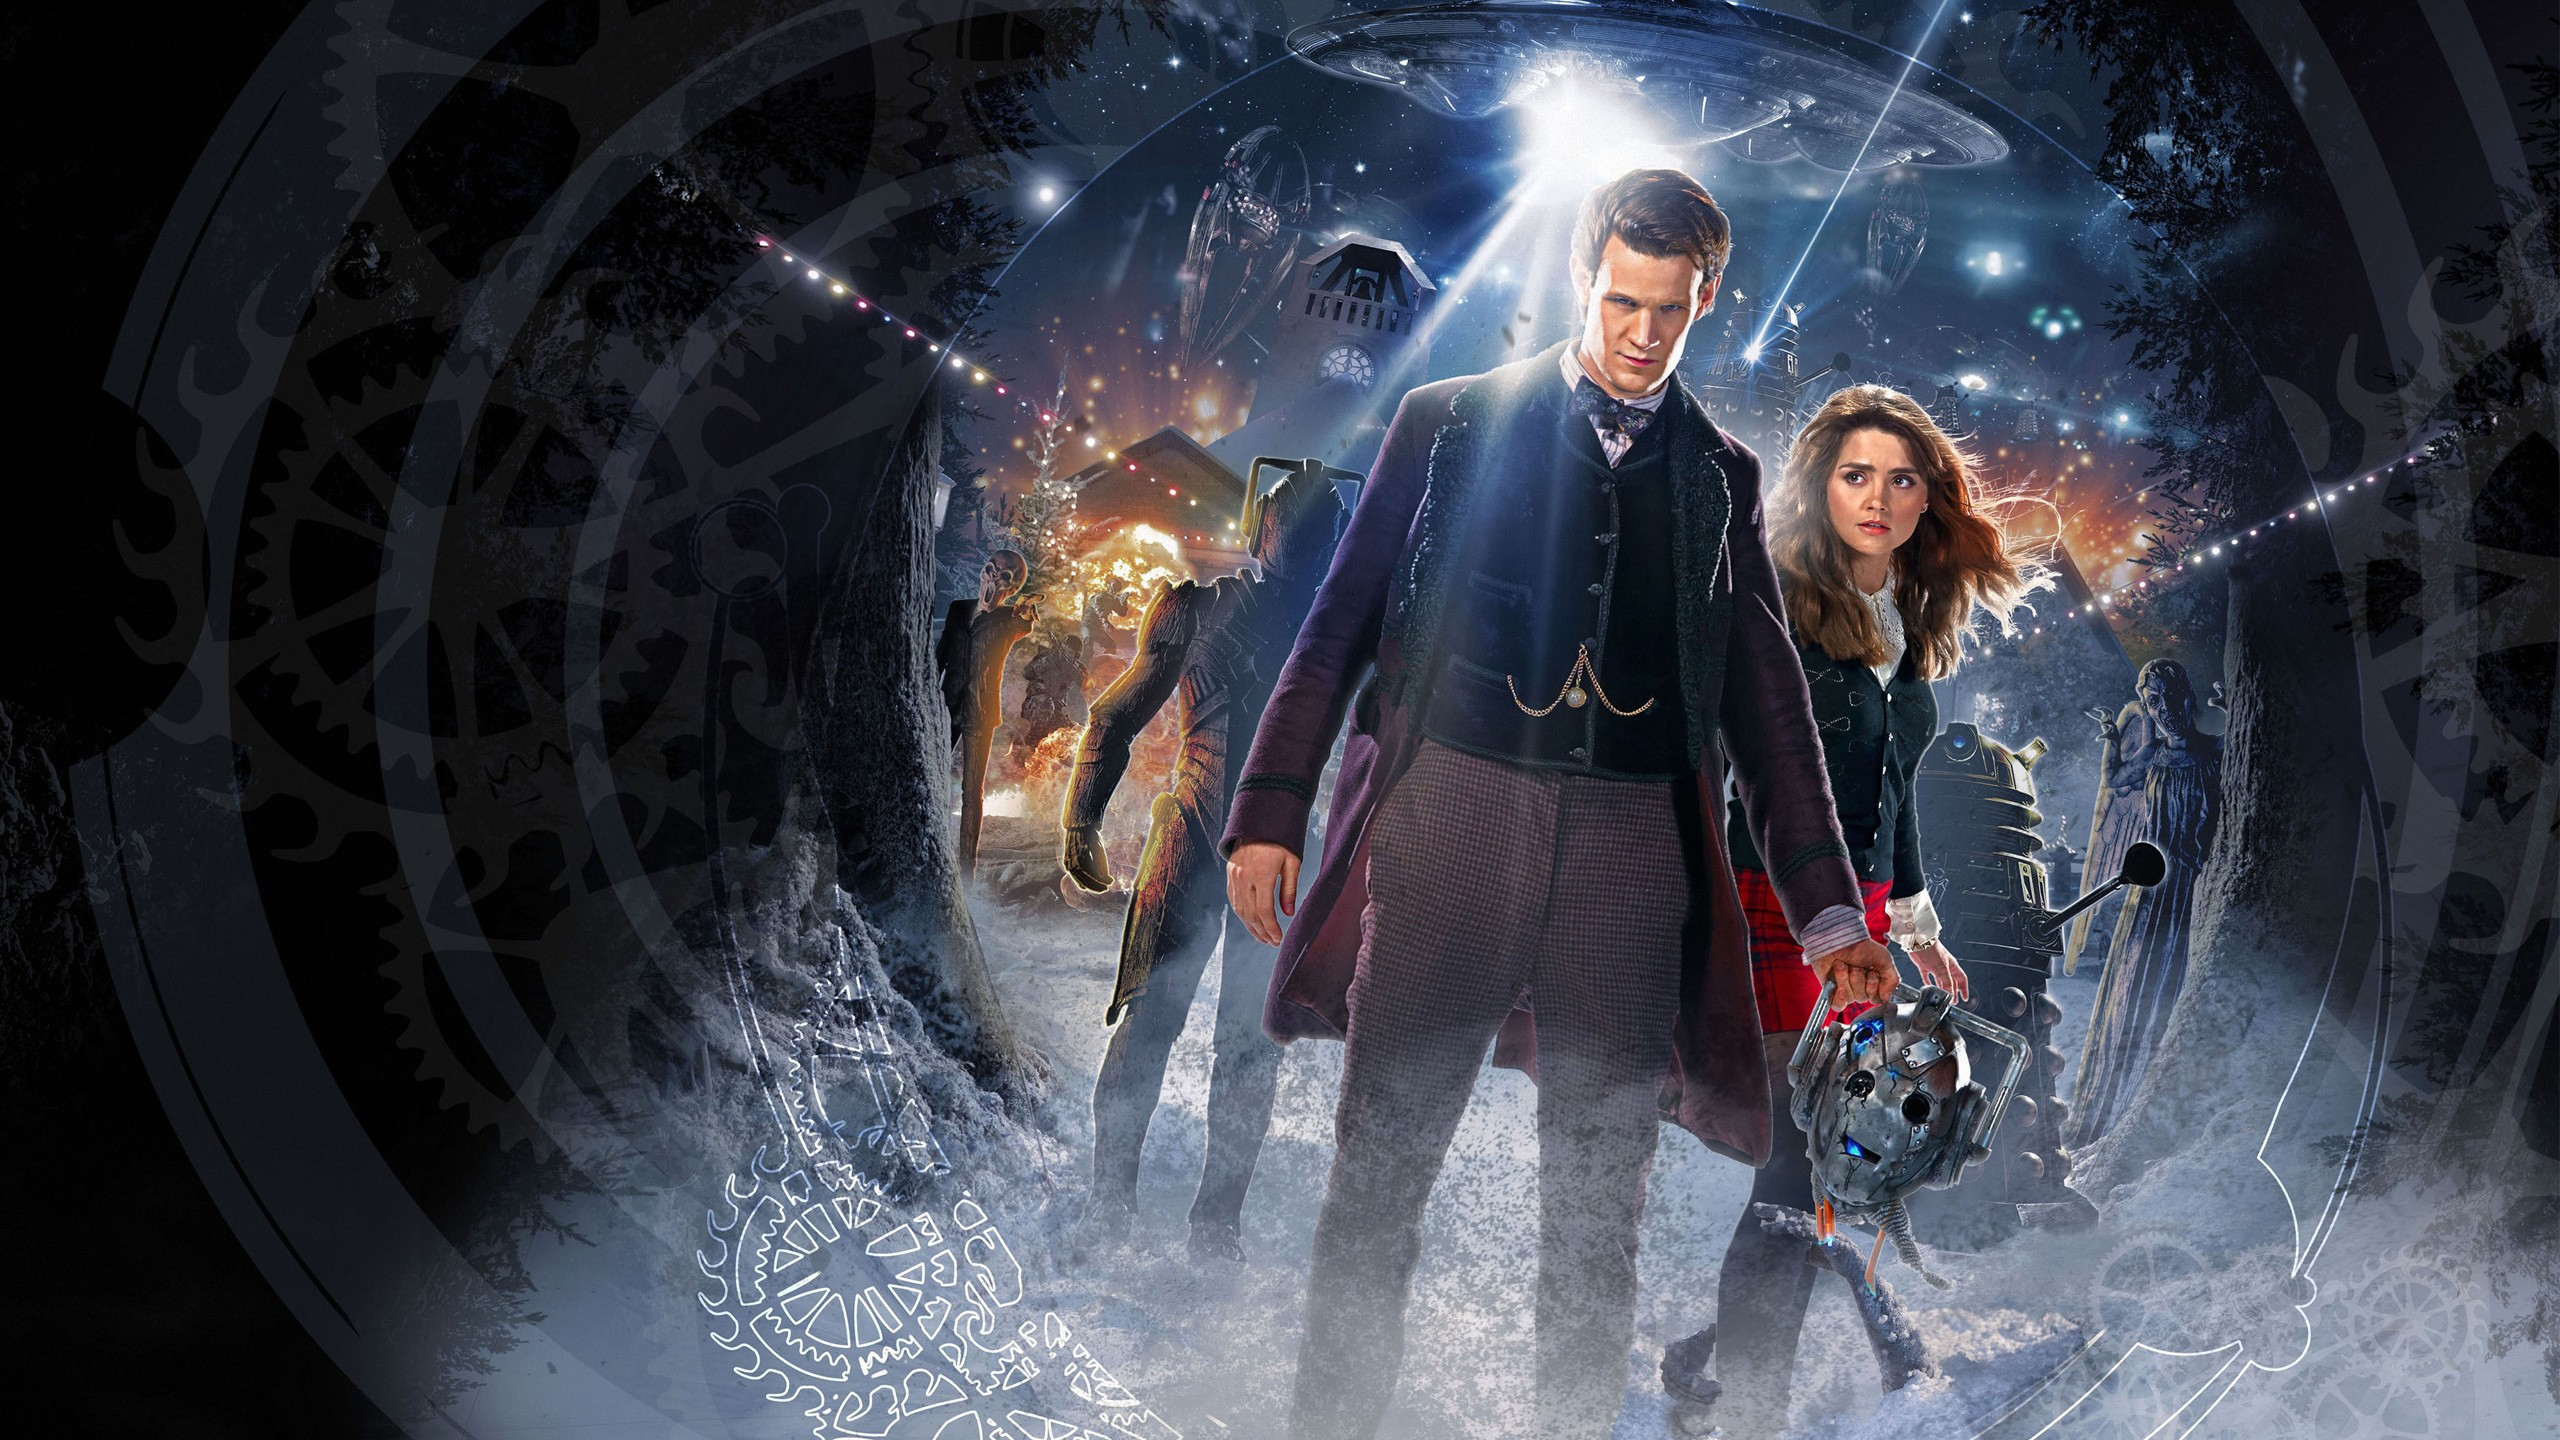 Tardis Iphone 4 Wallpaper Doctor Who Time Of The Doctor Wallpapers Hd Wallpapers